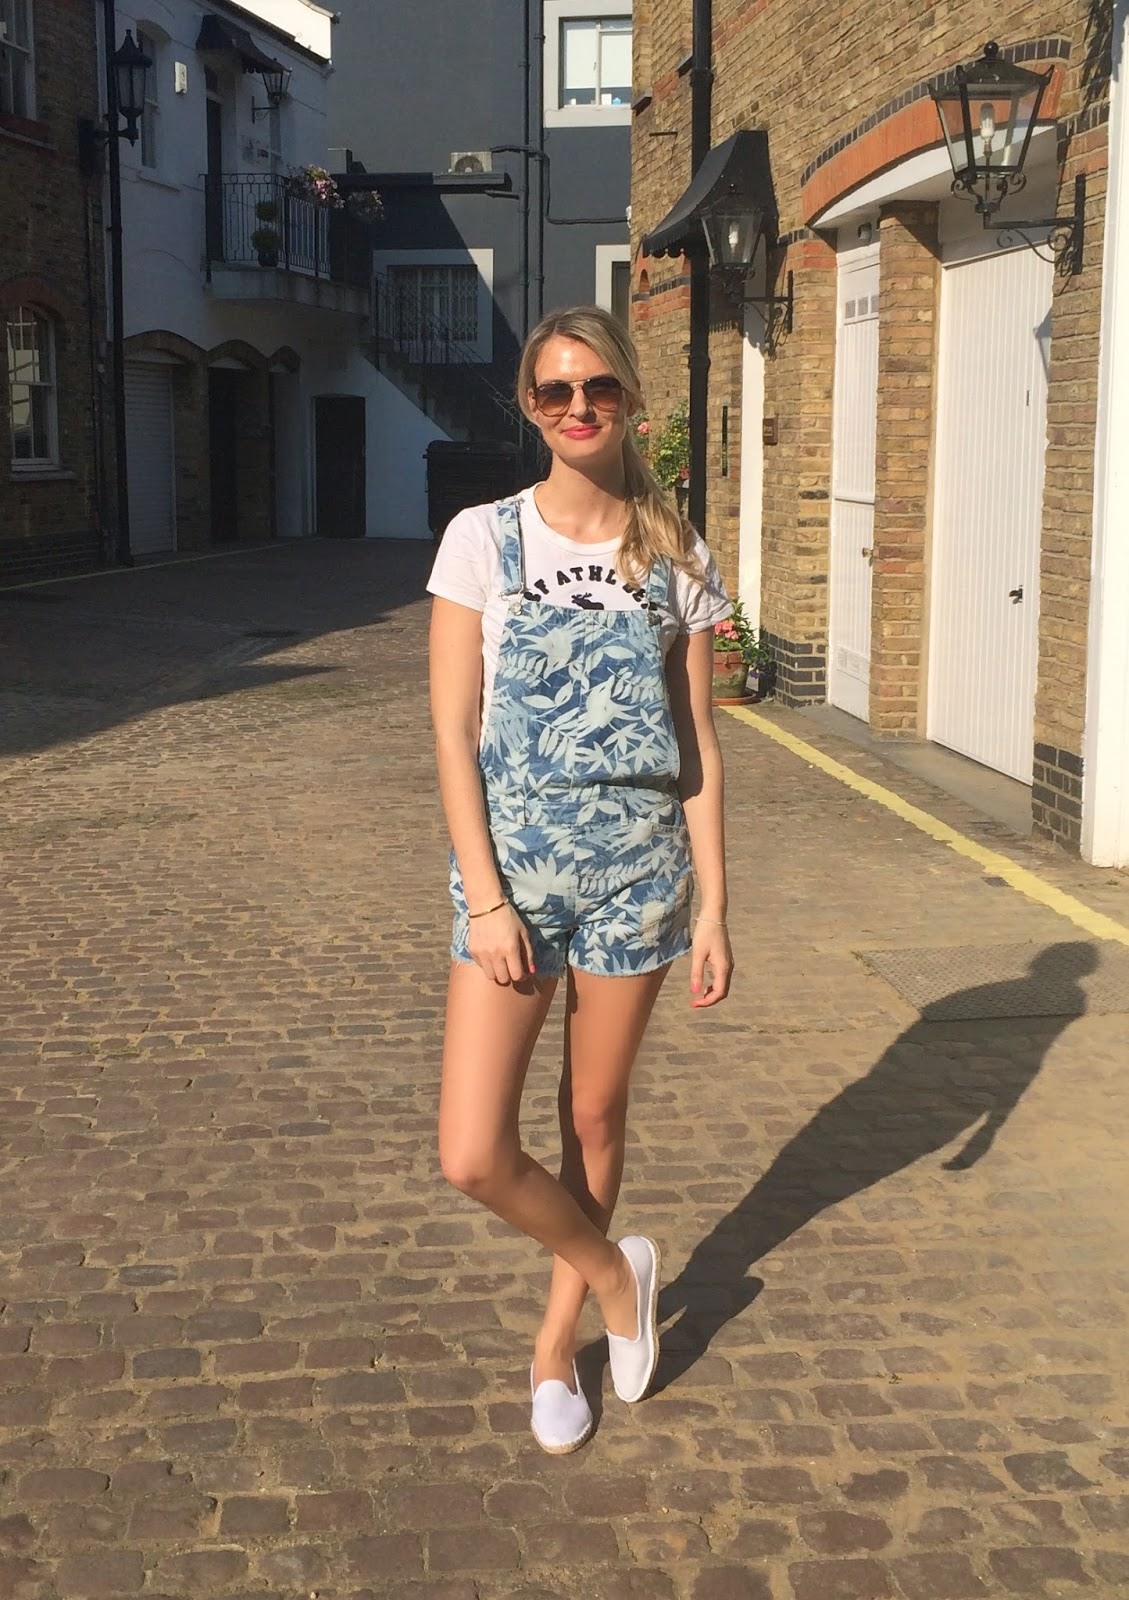 look book, fashion blogger, fashion blogger london, dungarees, printed dungarees, zara dungarees, dungarees street style, dungarees shorts, dungarees fashion blogger, espadrilles, asos, asos espadrilles, chrissabella, london, london blogger, london street style